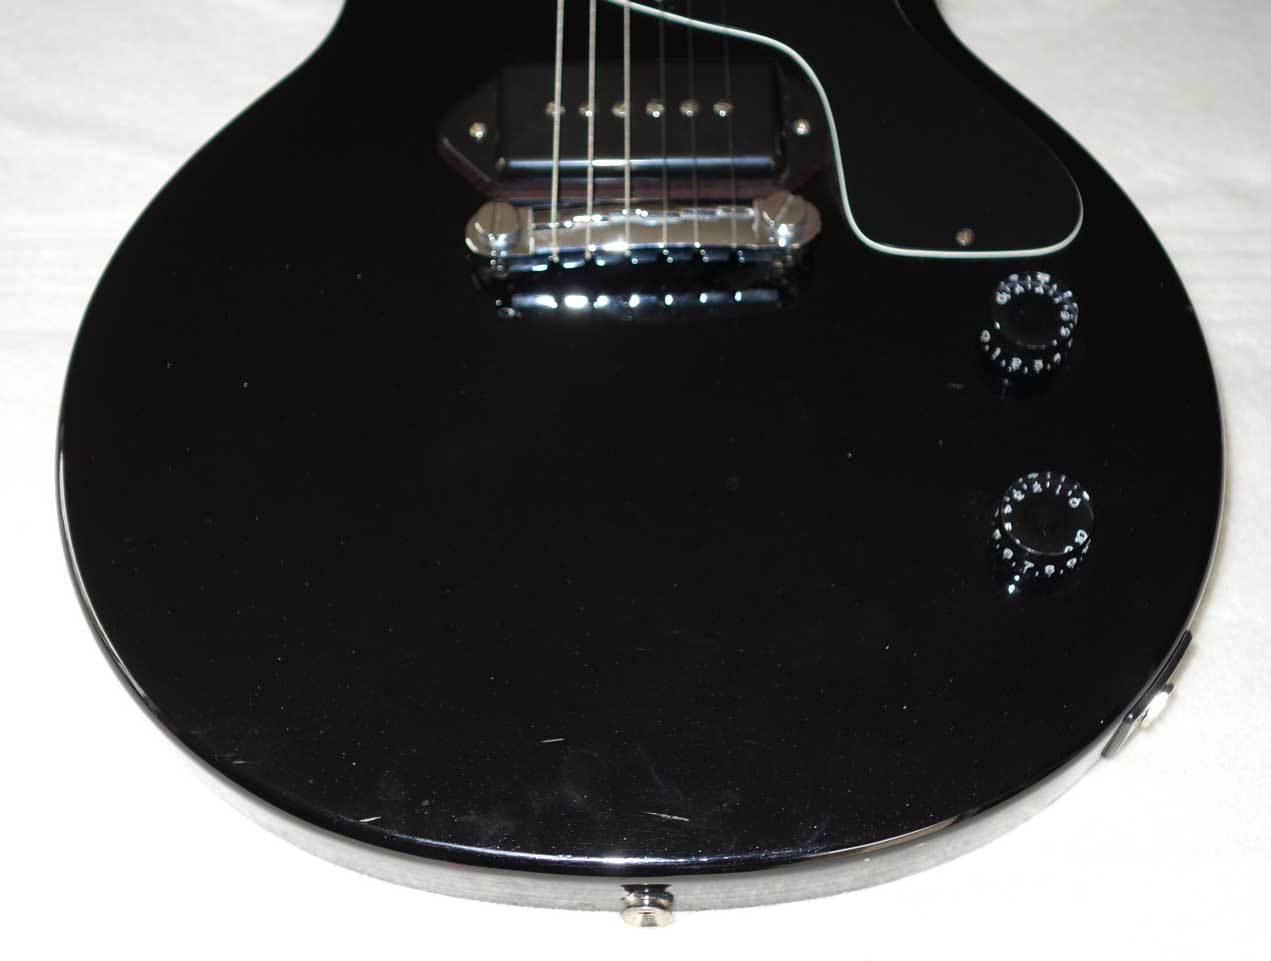 2003 Epiphone Les Paul Junior w/Epi P90 Mod, Upgraded Tuners, USA Posts/Threads, Made by SaeJun (China)